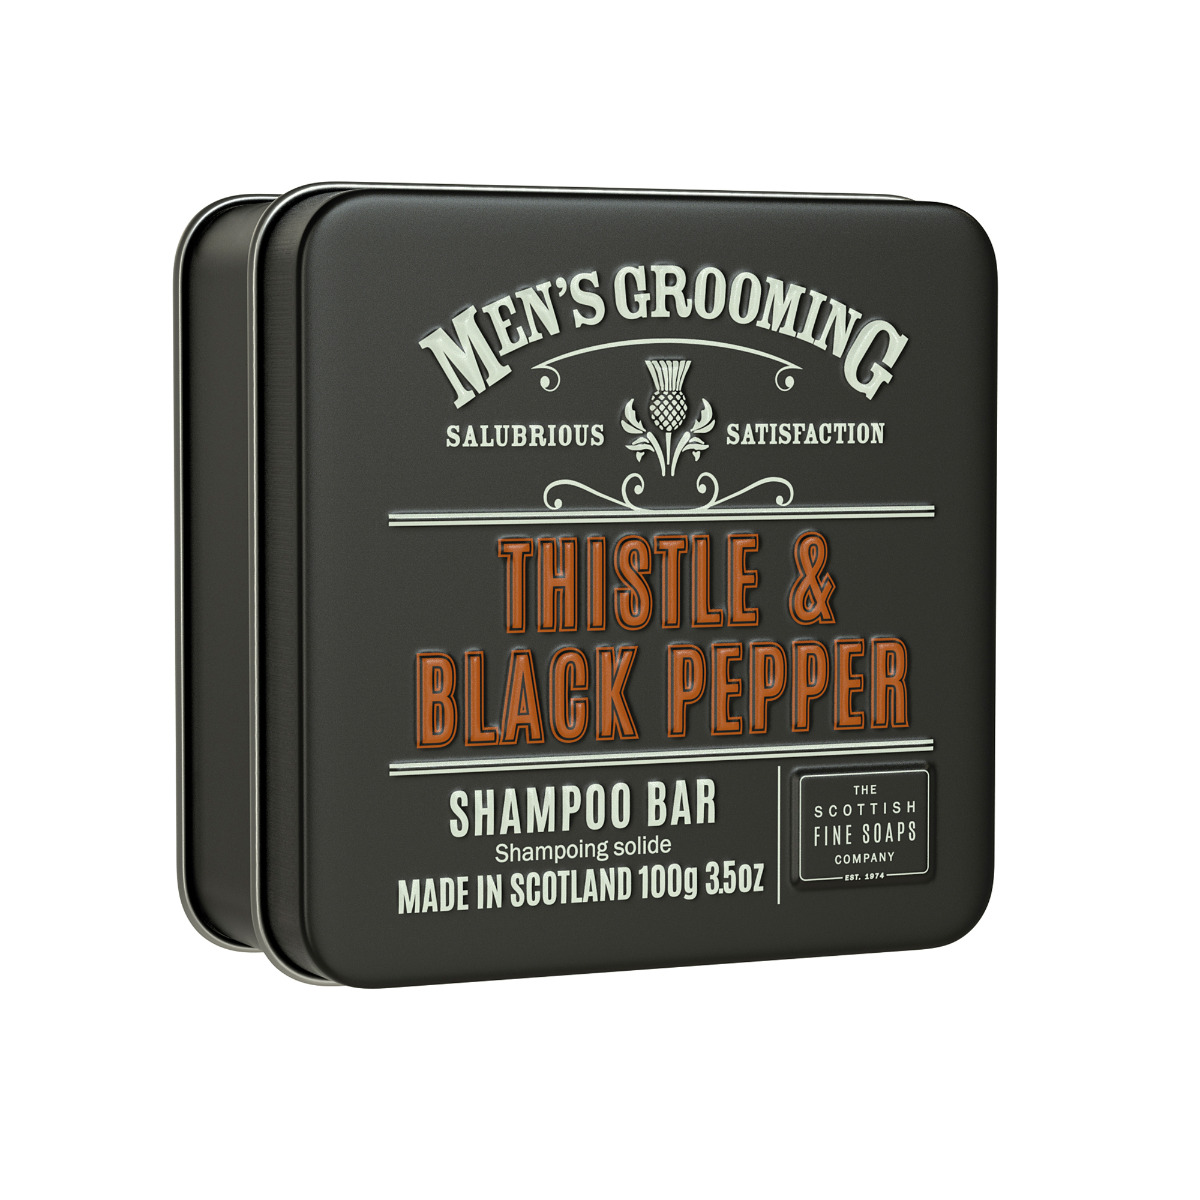 Scottish Fine Soaps Thistle & Black Pepper Shampoo Bar 100g